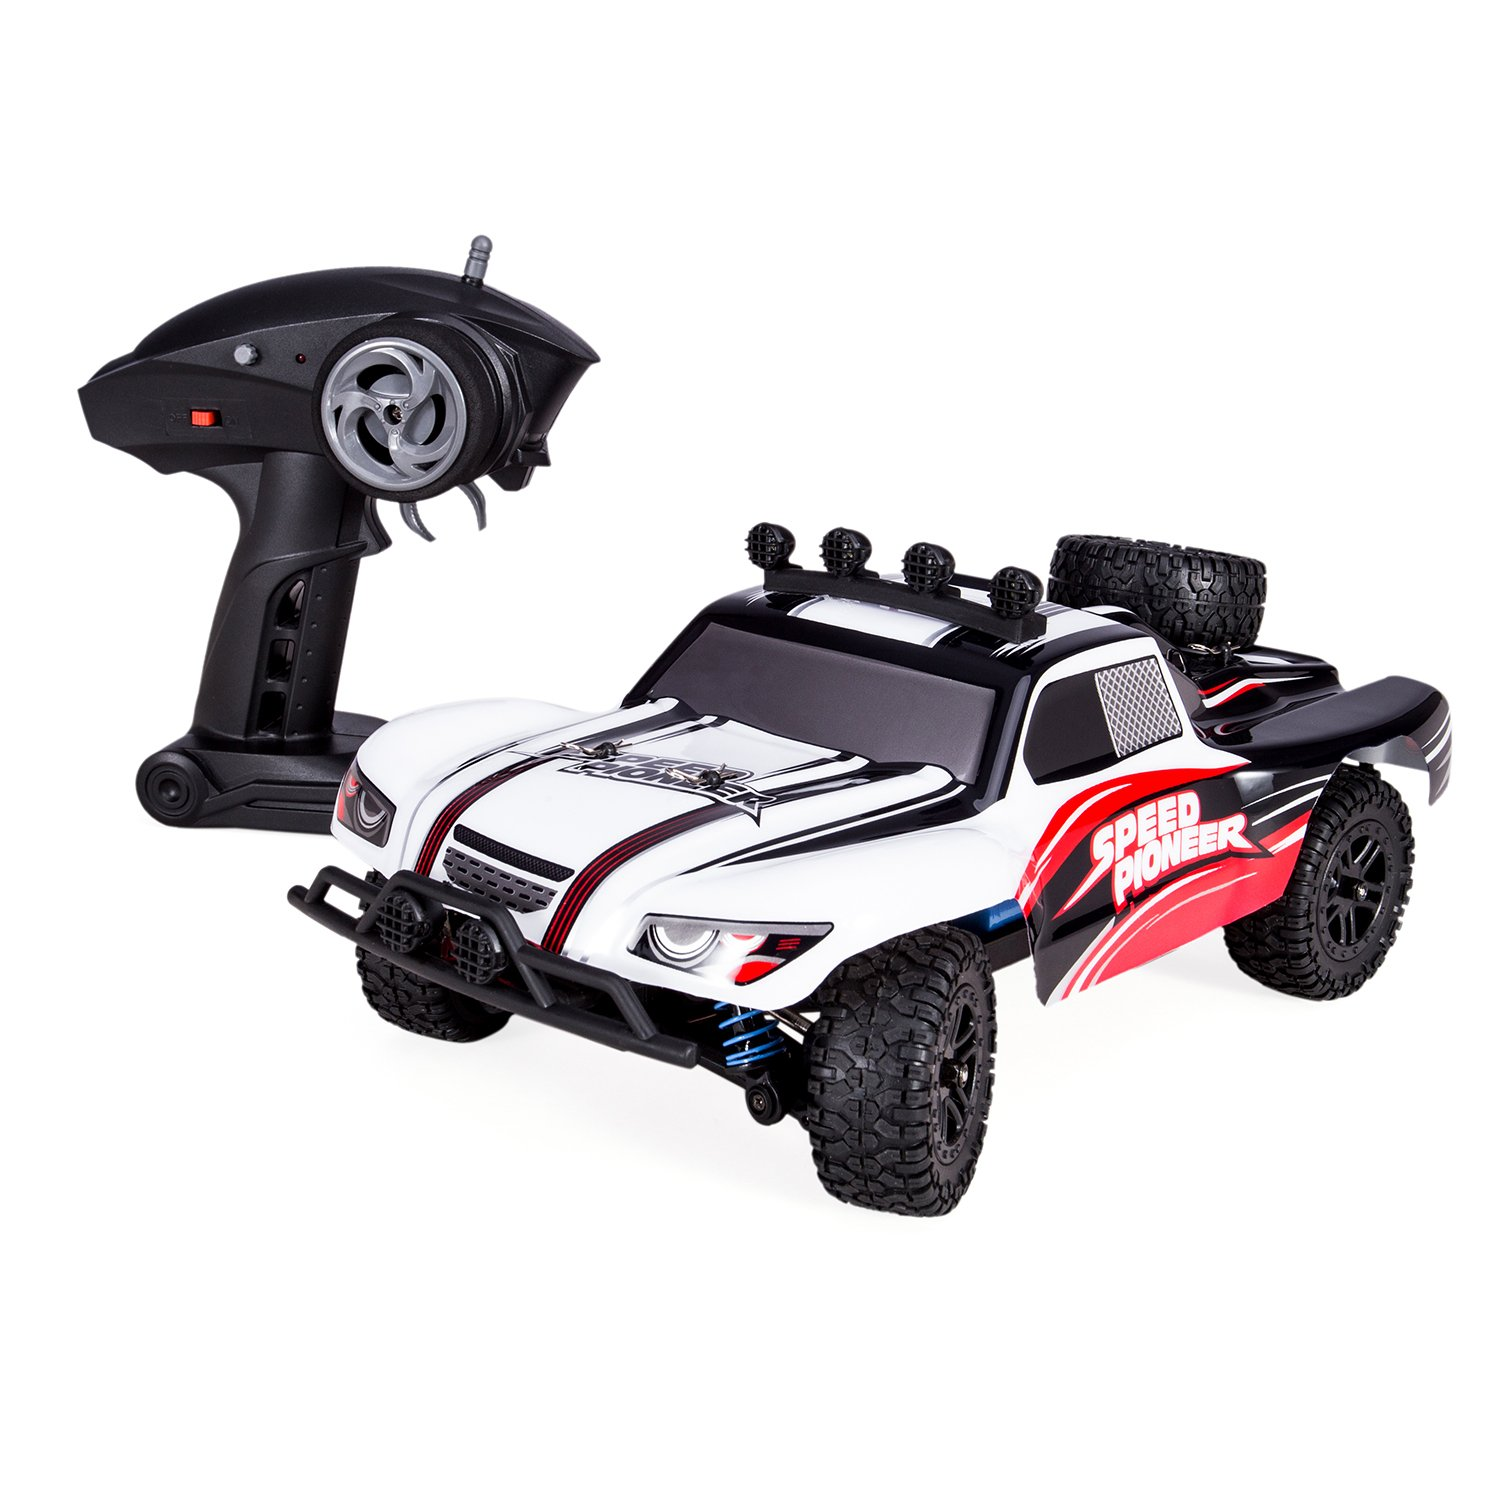 Wholesale 1:5 Rc Car Baja Hummer Truck Bm275 4wd Powerfull Engine Big  Monster 4wd Truck Rechargeable Remote Control Cars Rc Model Cars From  Henryk, ...